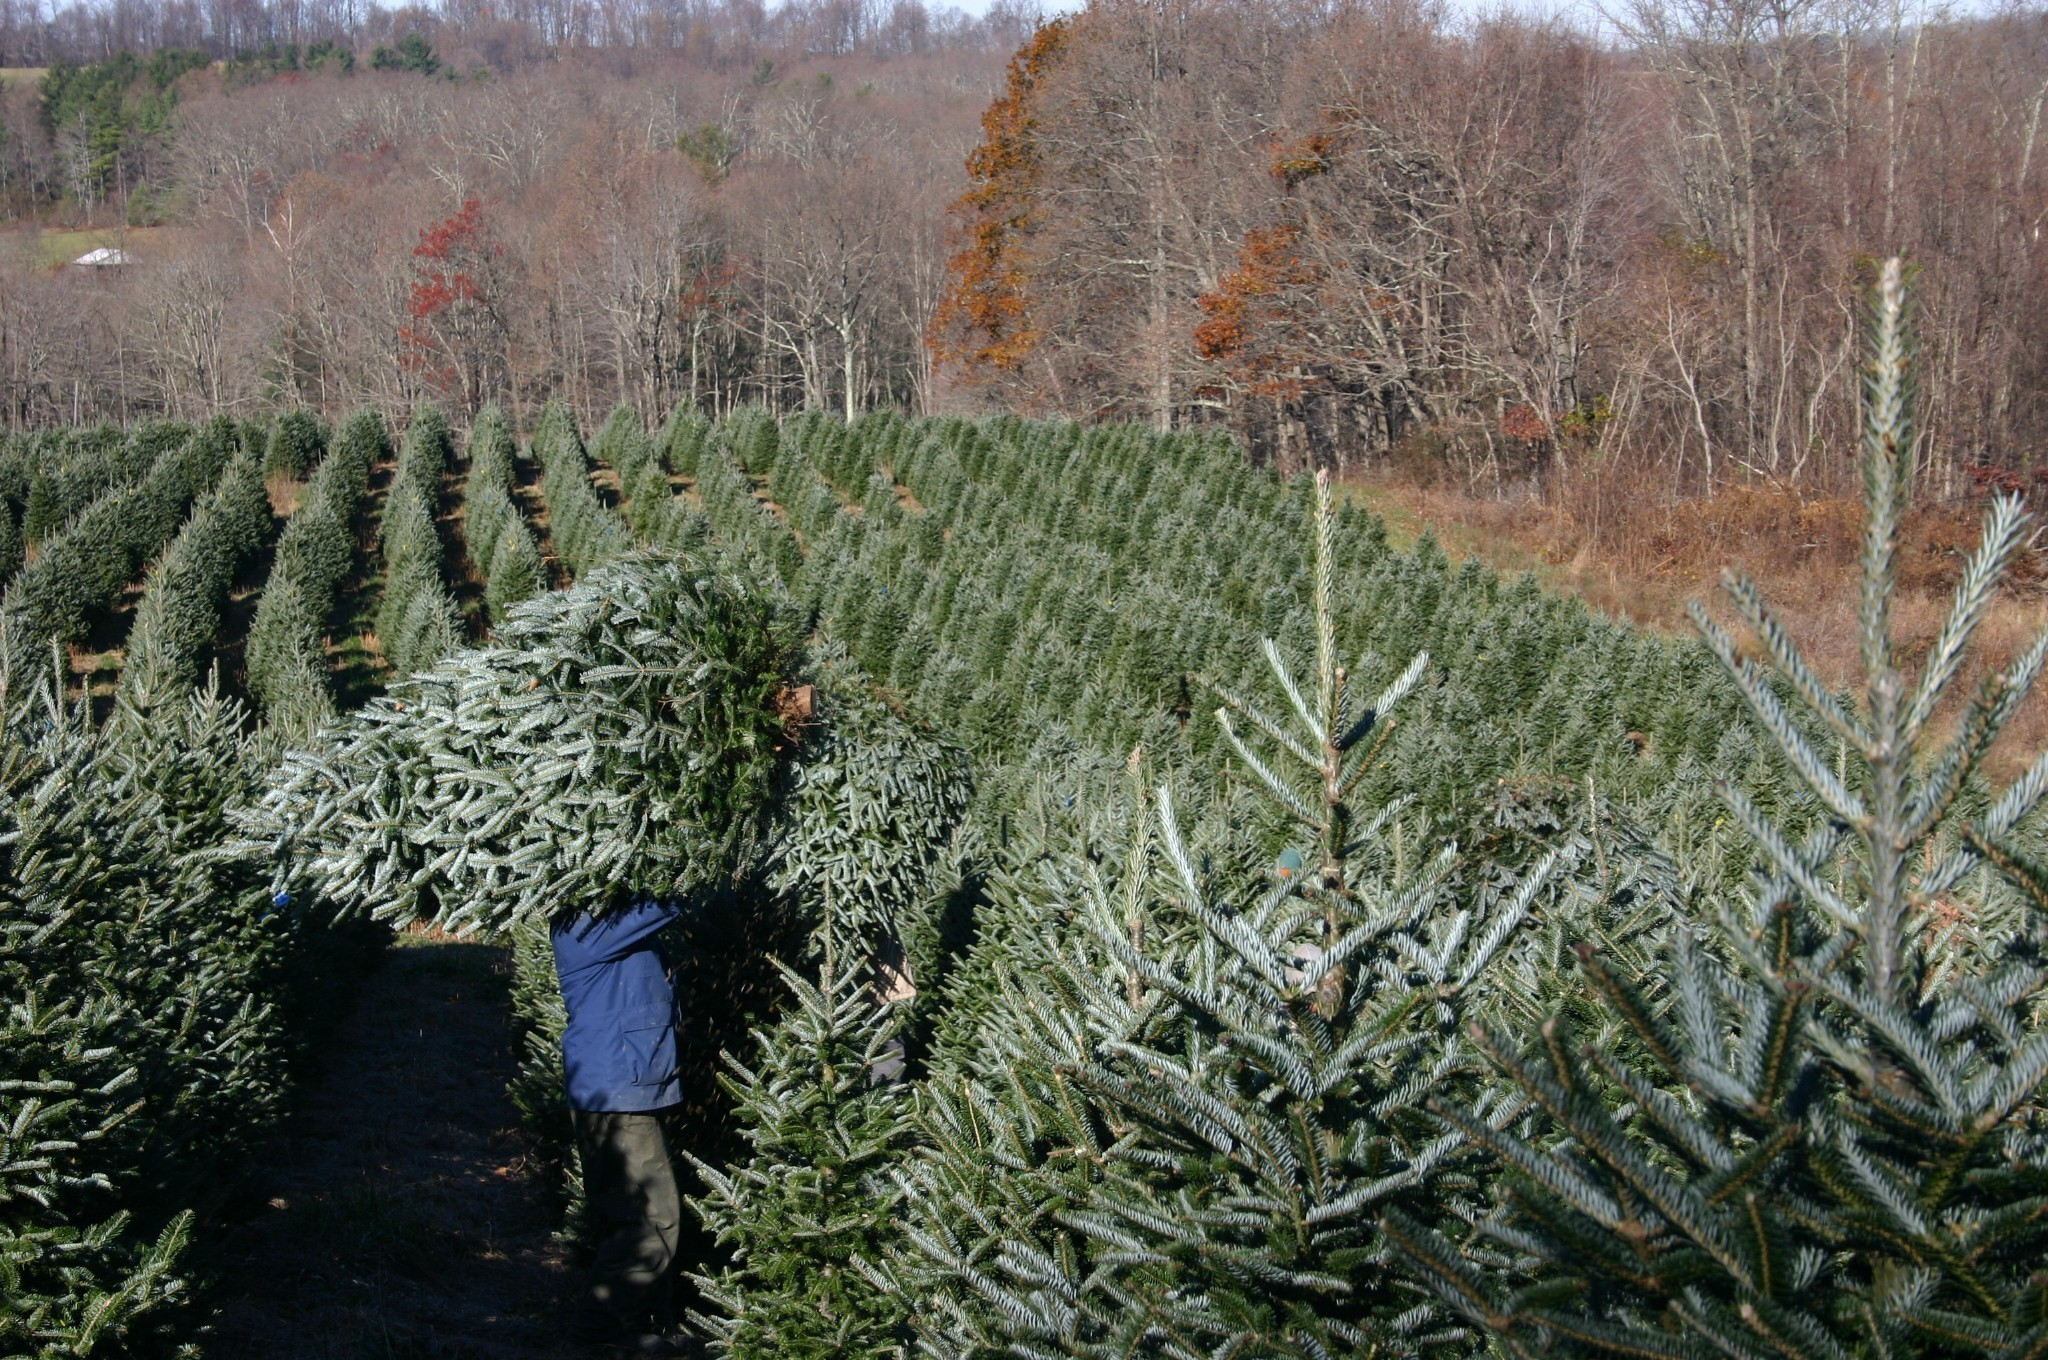 Find Your Perfect Christmas Tree At Cut And Choose Farms, Garden Centers    Daily Press